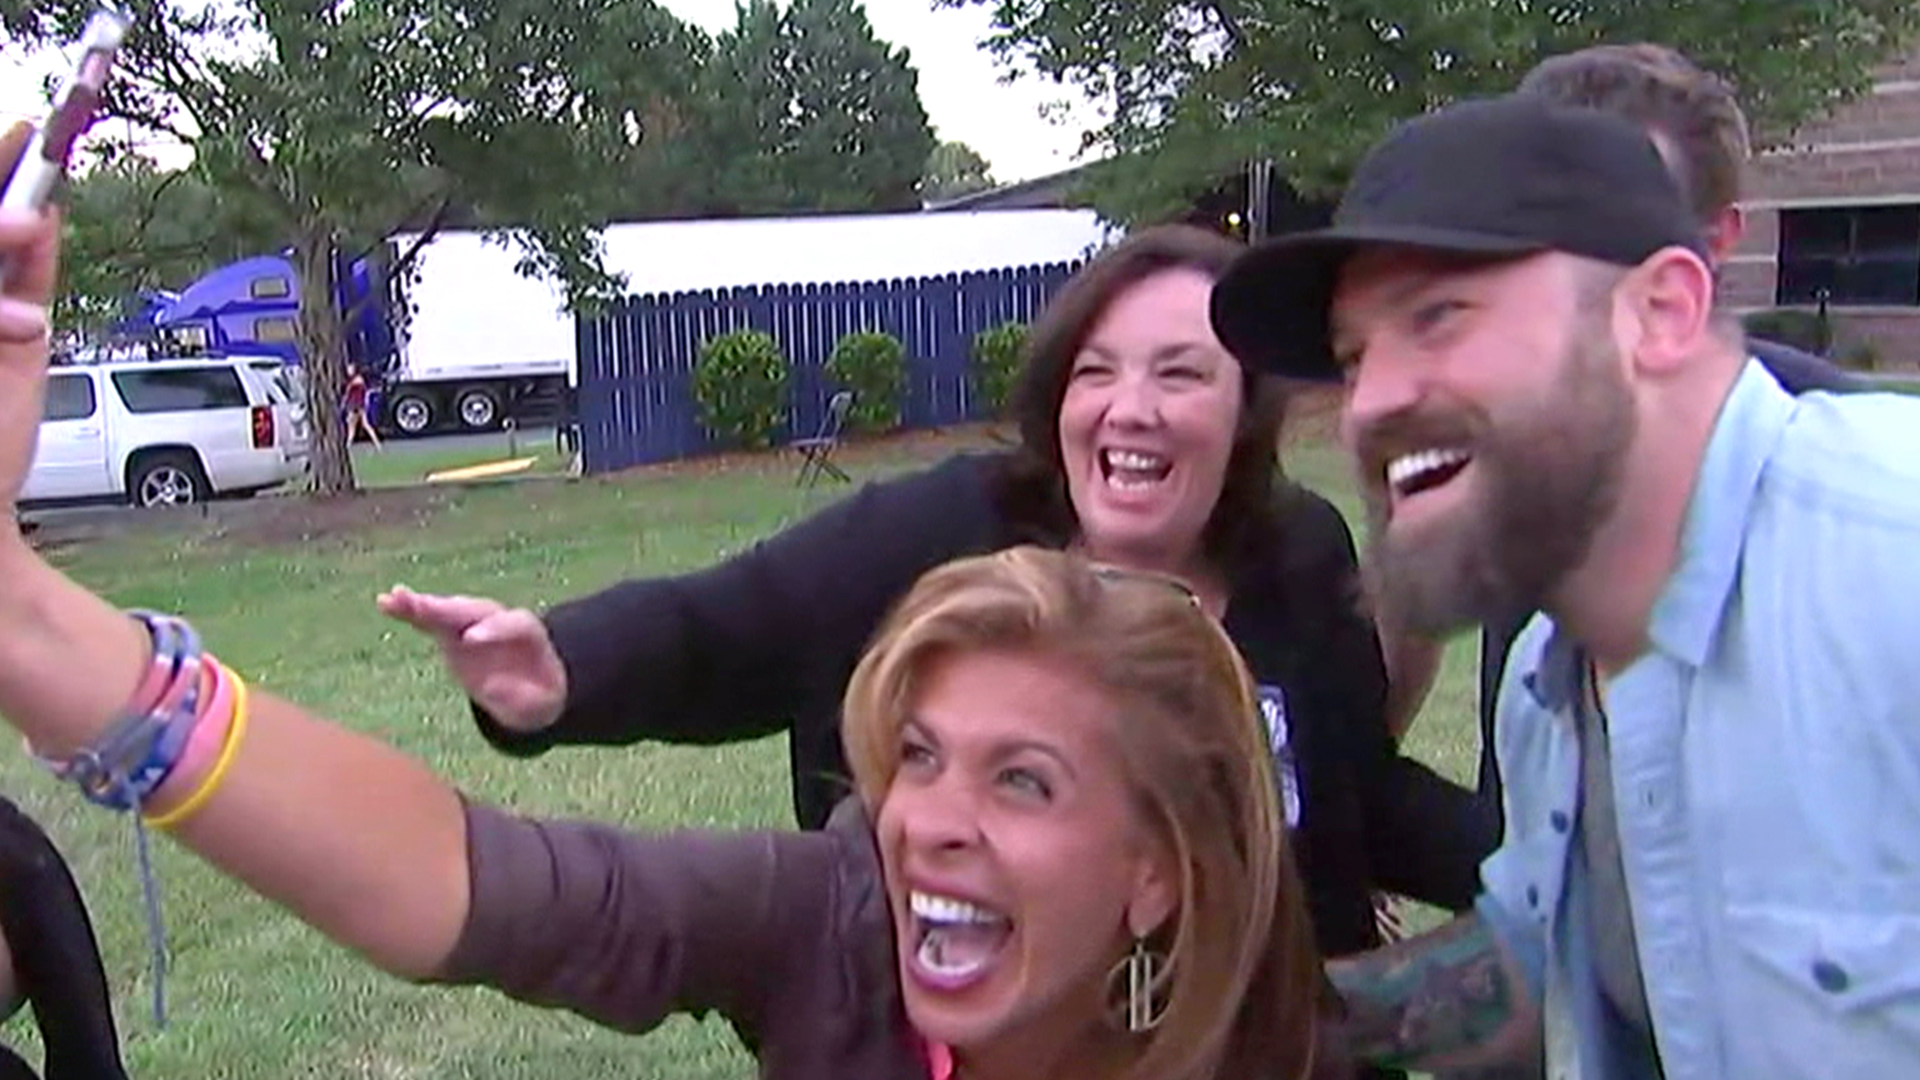 Zac brown band surprises moms whose kids battled cancer m4hsunfo